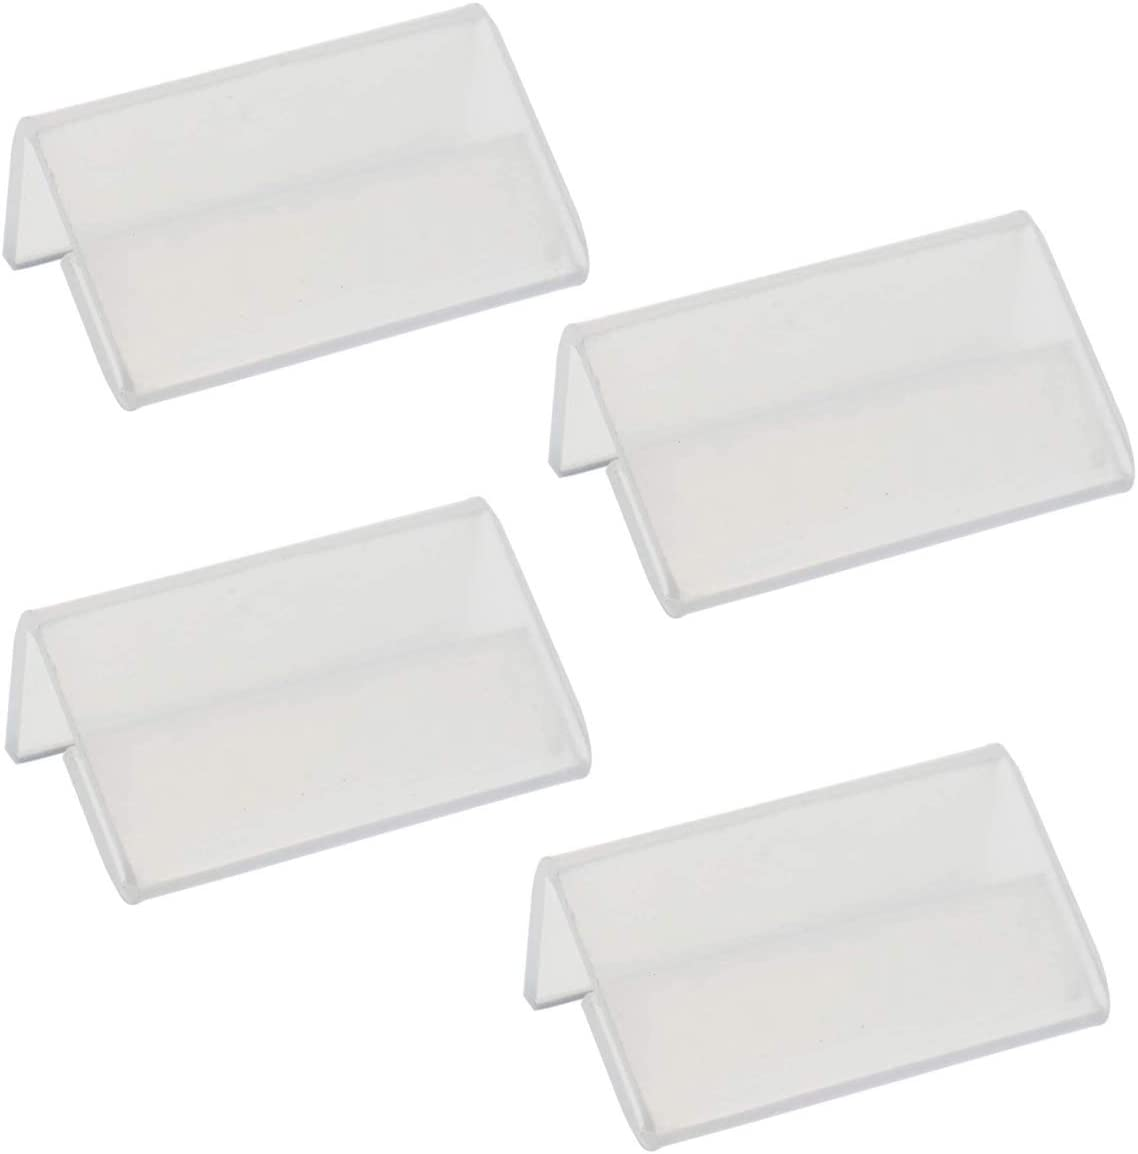 15 Pieces L Shape Mini Sign Display Holder Acrylic L Shape Counter Top Stand Clear Acrylic Price Card Tag Label Stand Display 4x2cm